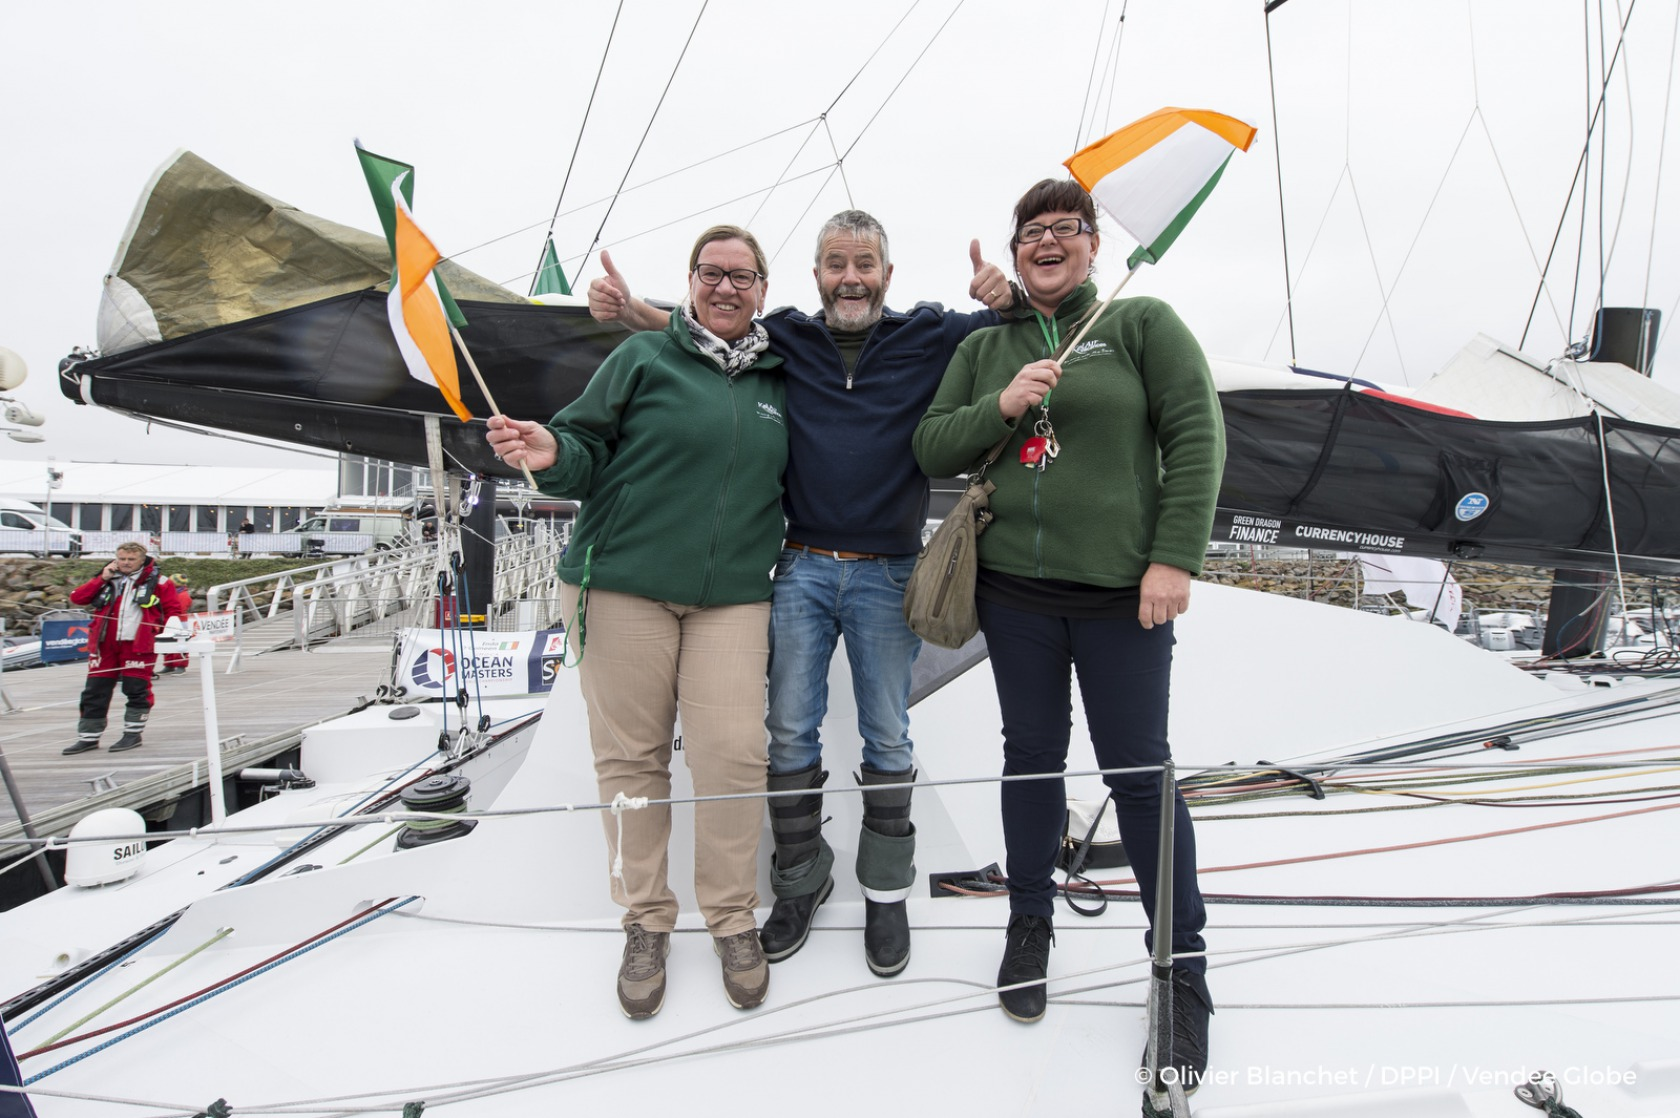 Enda O'Coineen (IRL), skipper Kilcullen Voyager - Team Ireland, arrived at pontoon in Port Olona for the start of the Vendee Globe 2016, expected november 6th, solo circumnavigation race, in Les Sables d'Olonne on october 13th, 2016 - Photo Olivier Blanch